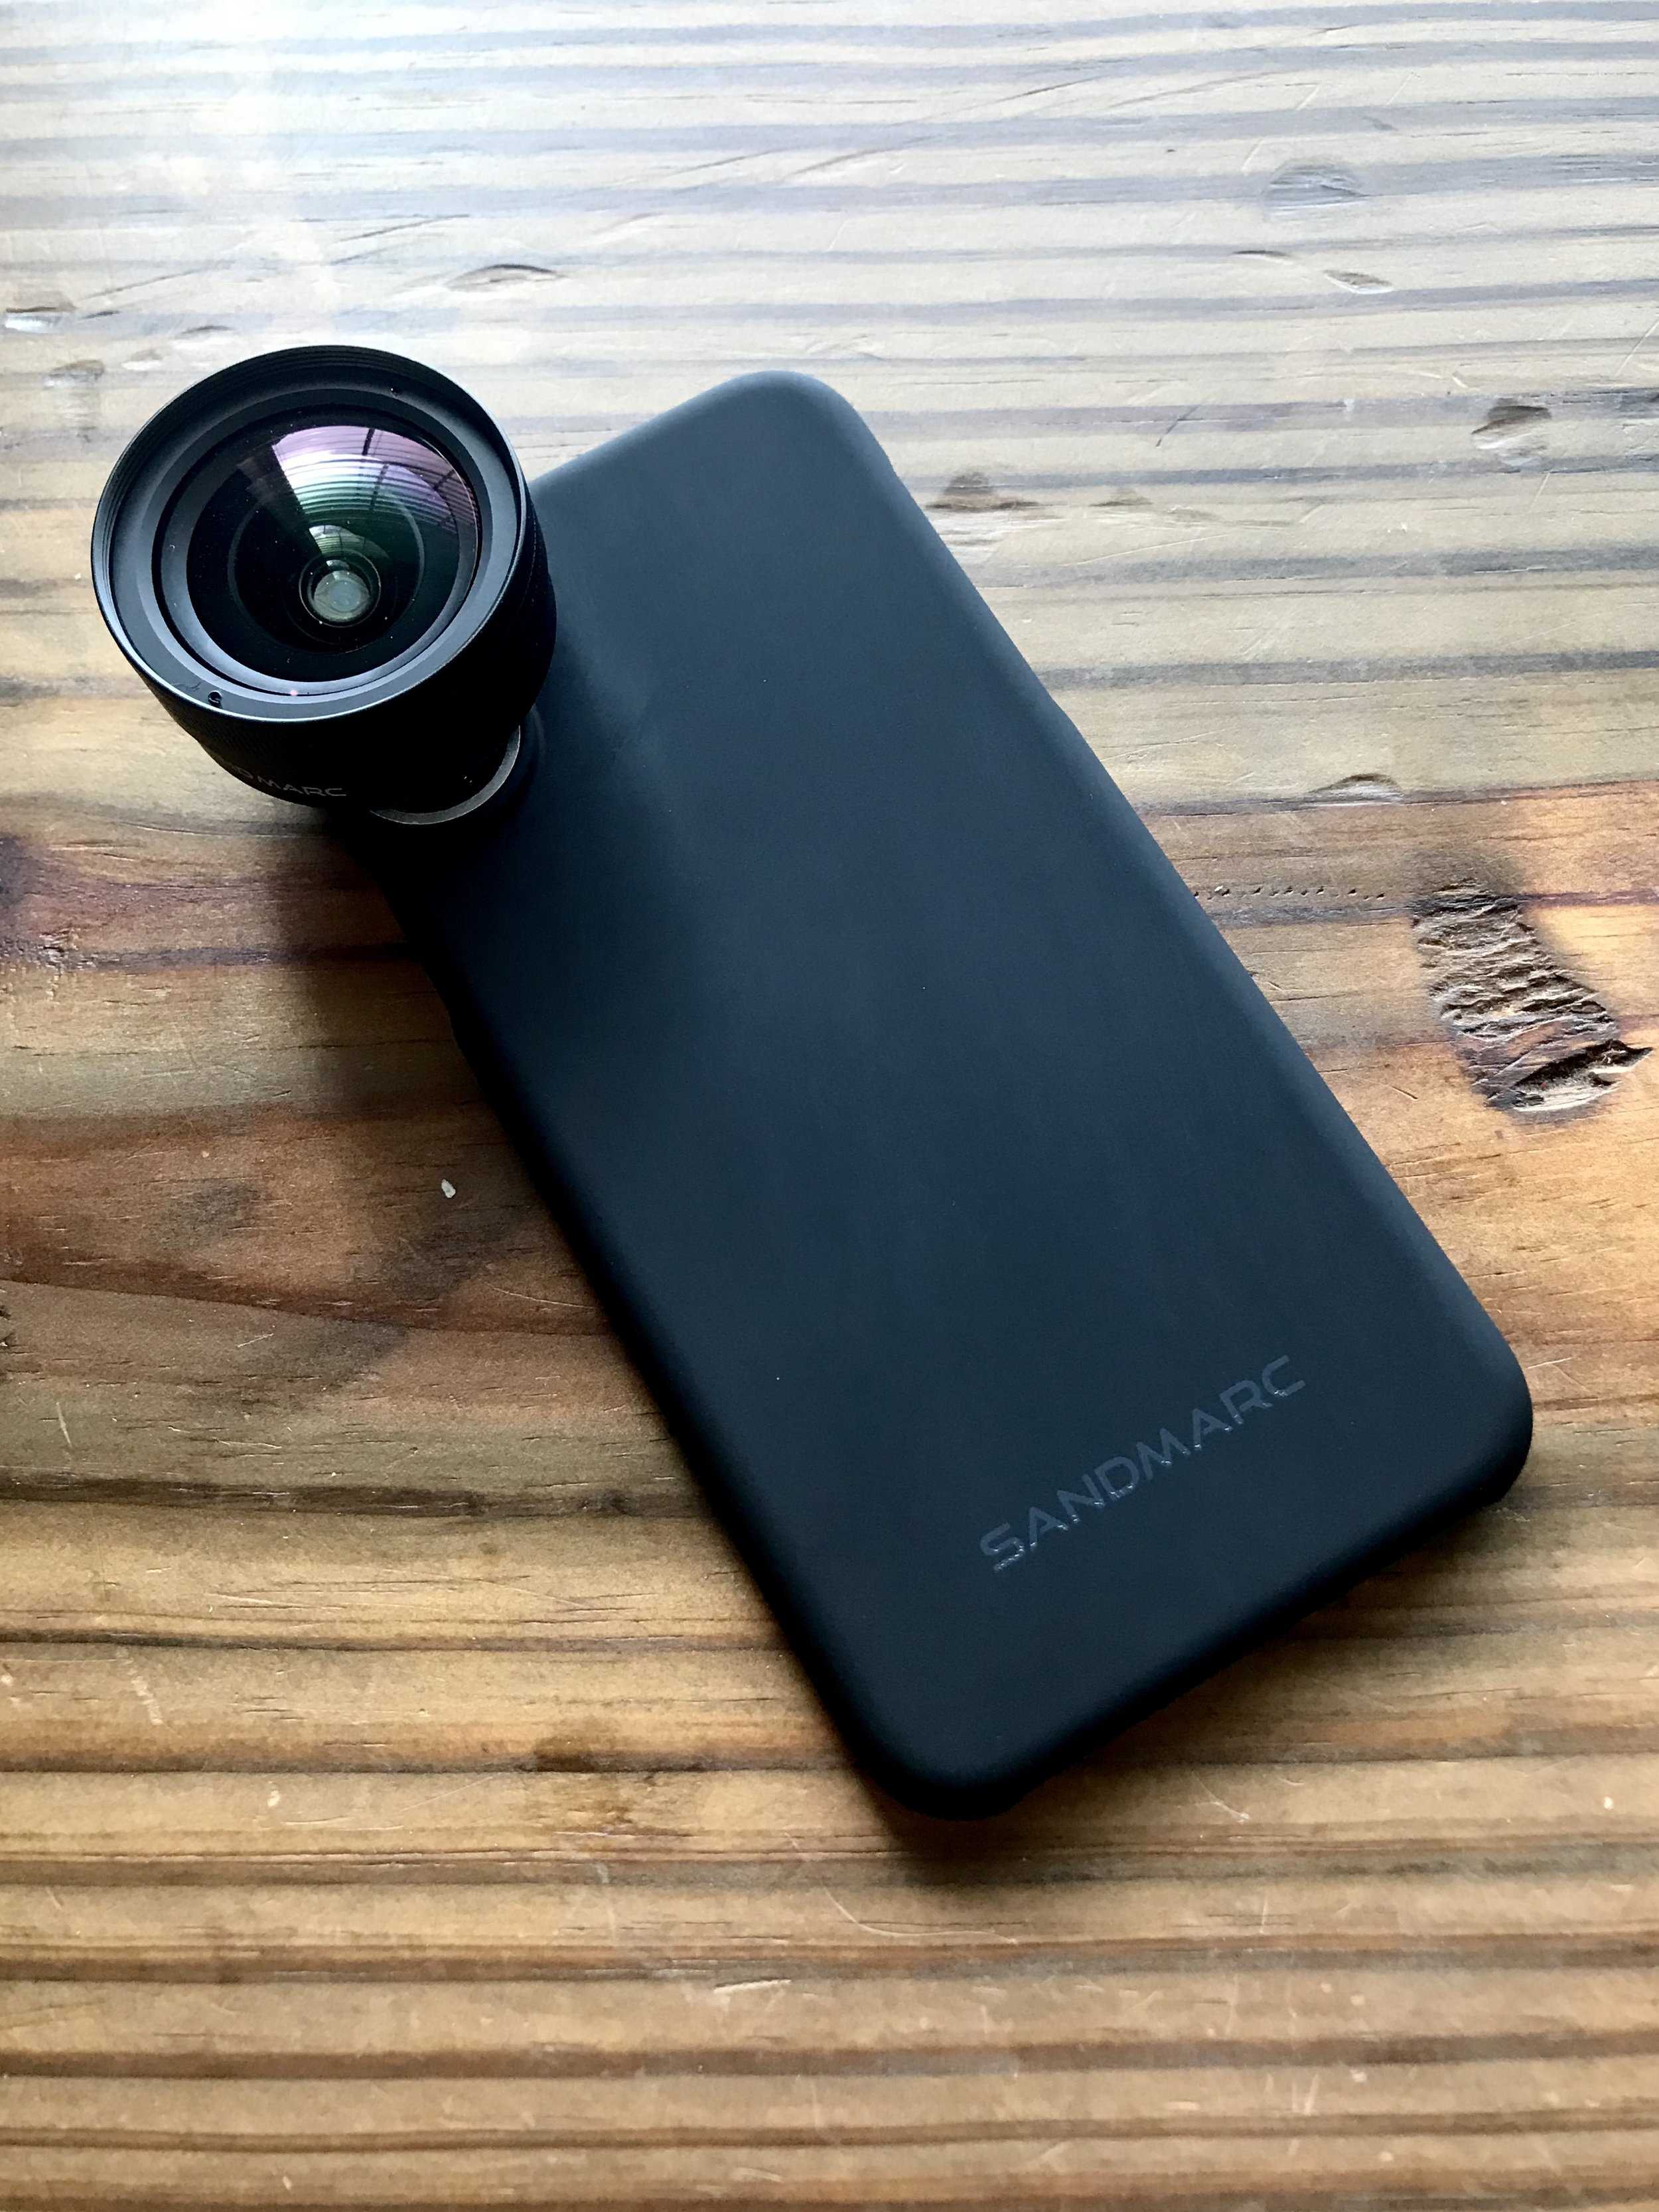 Sandmarc case and wide-angle lens on my iPhone X.